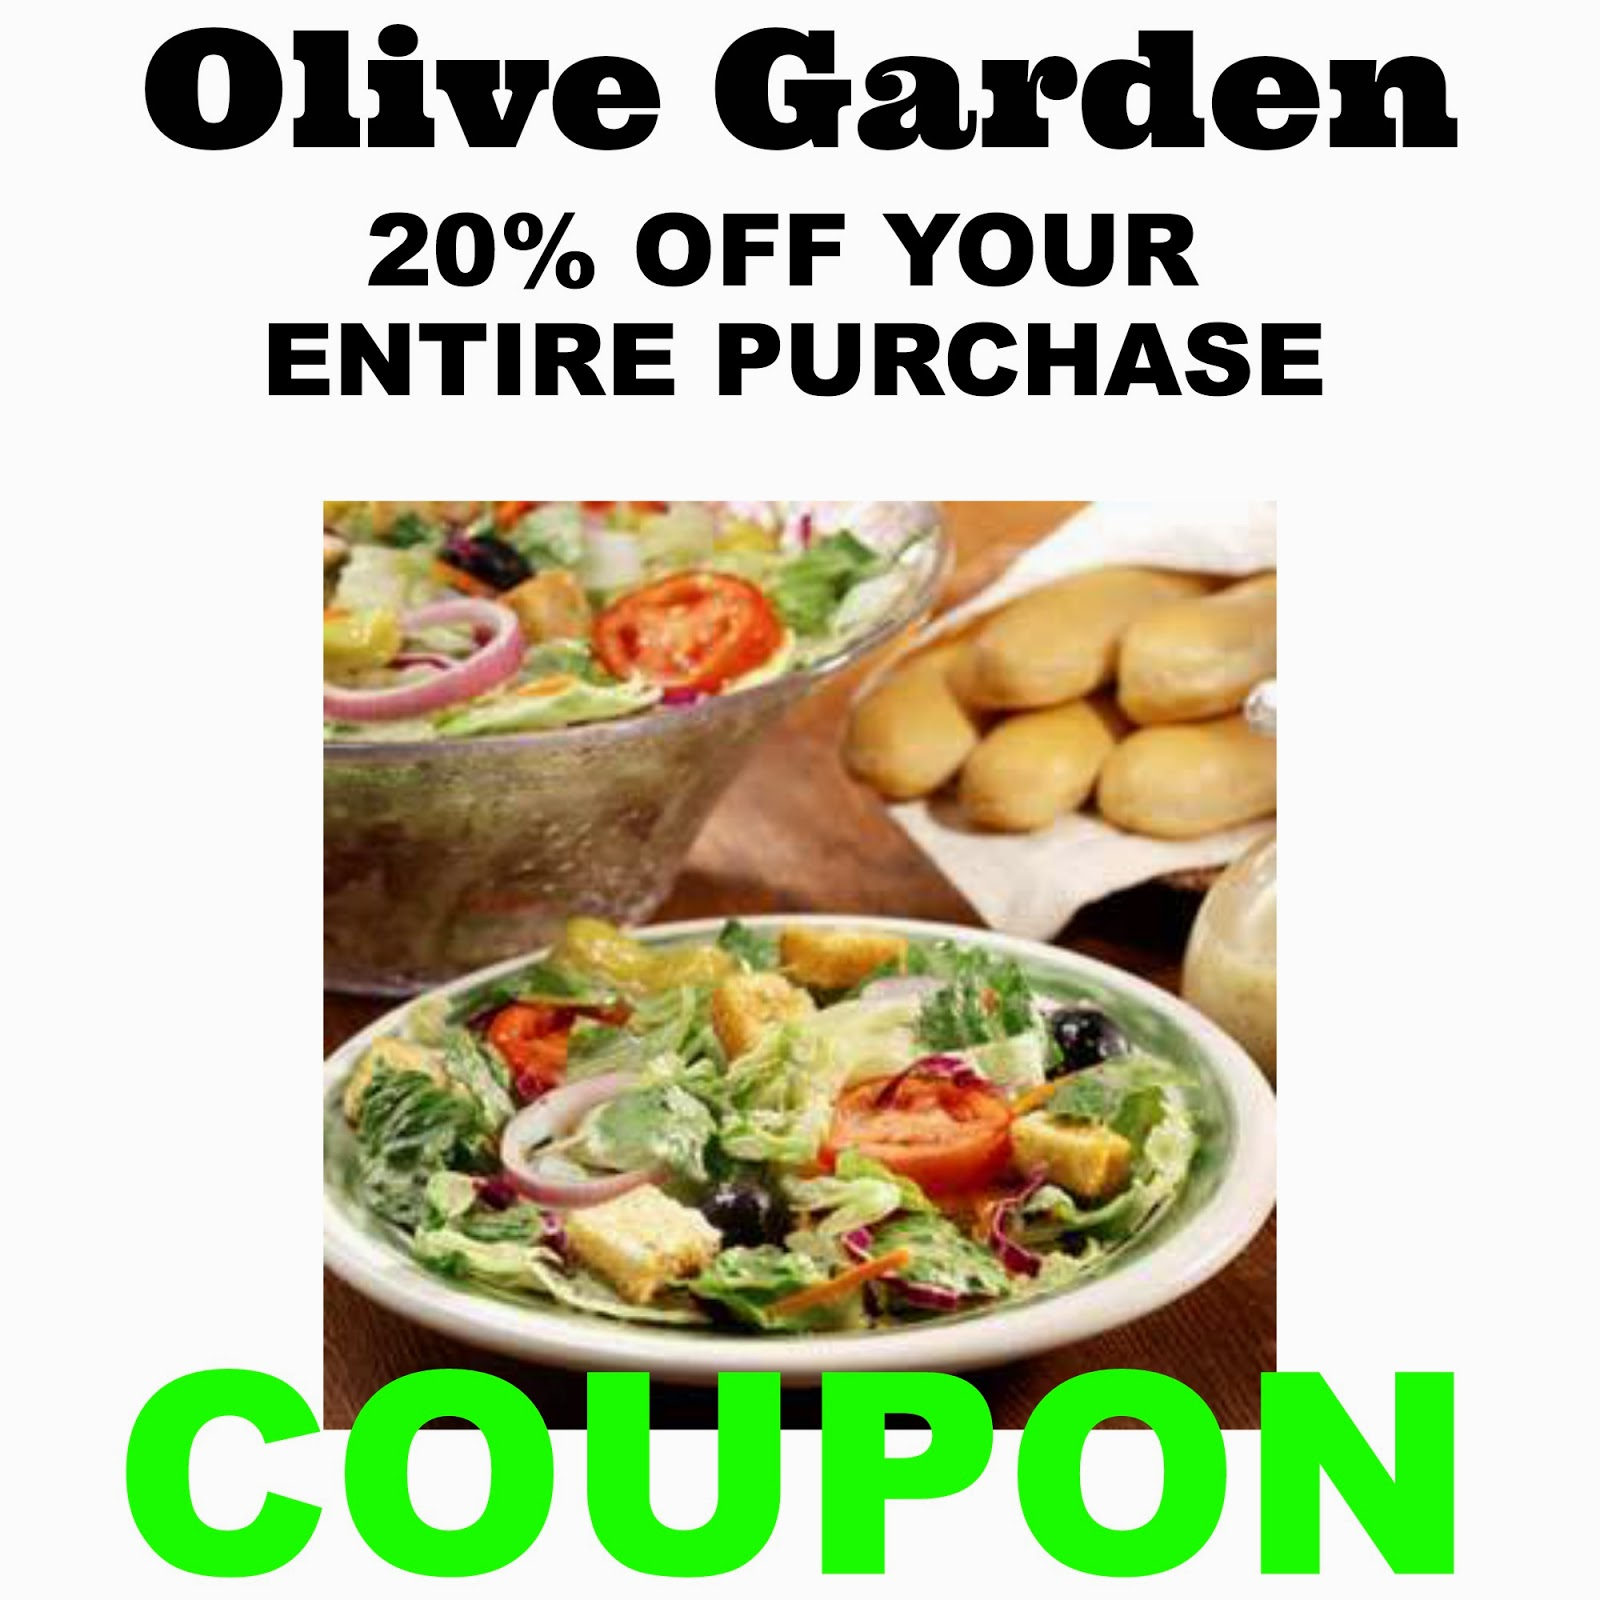 Olive garden florida coupons